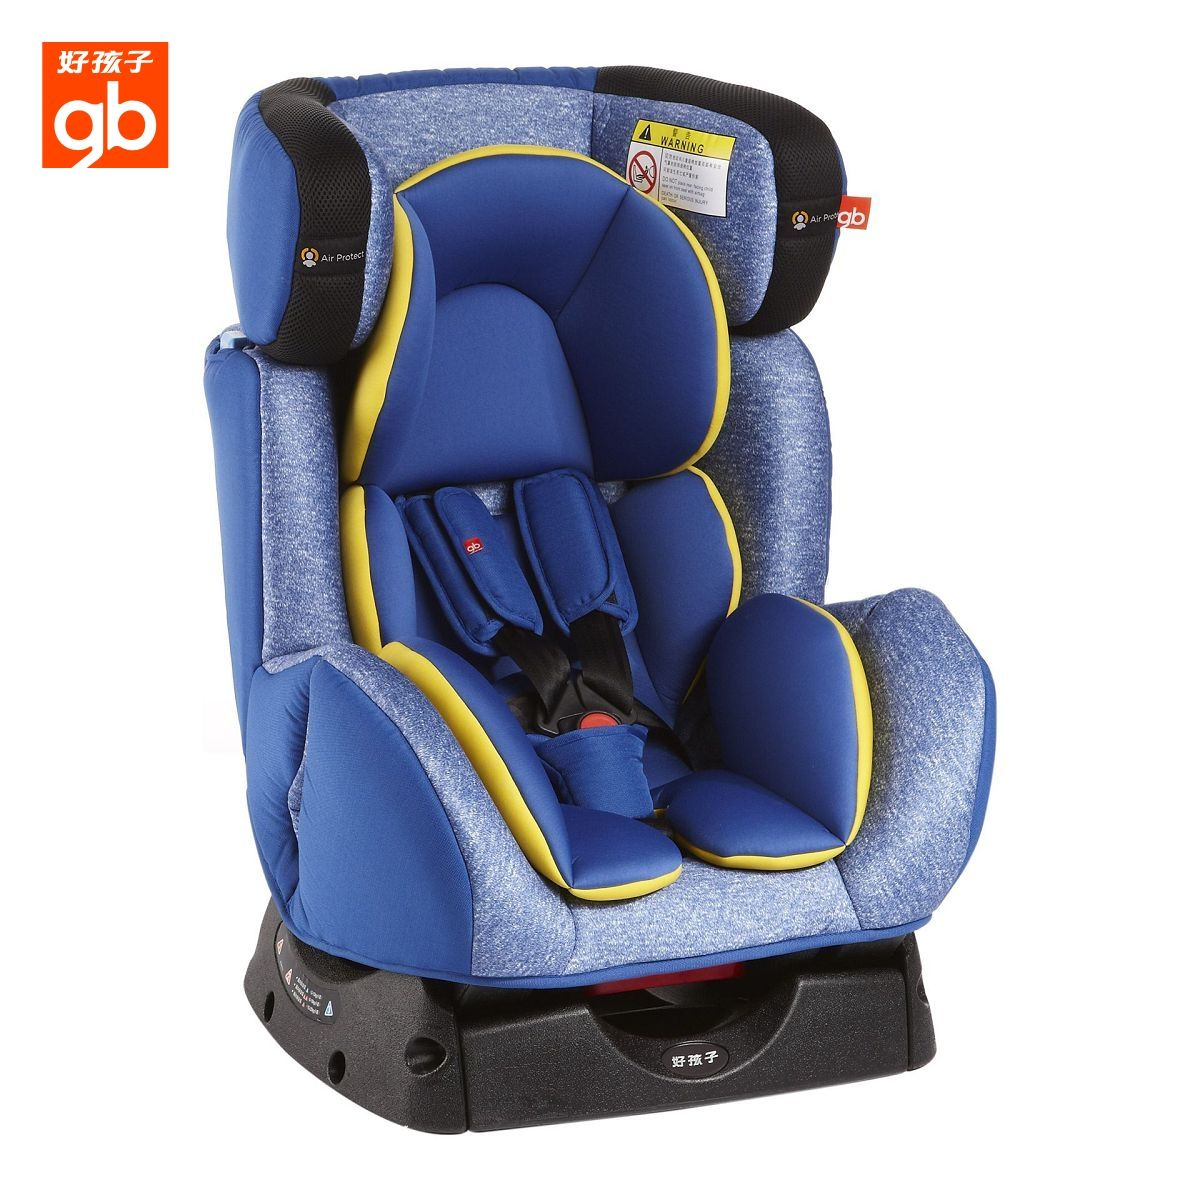 child car seat images. Black Bedroom Furniture Sets. Home Design Ideas